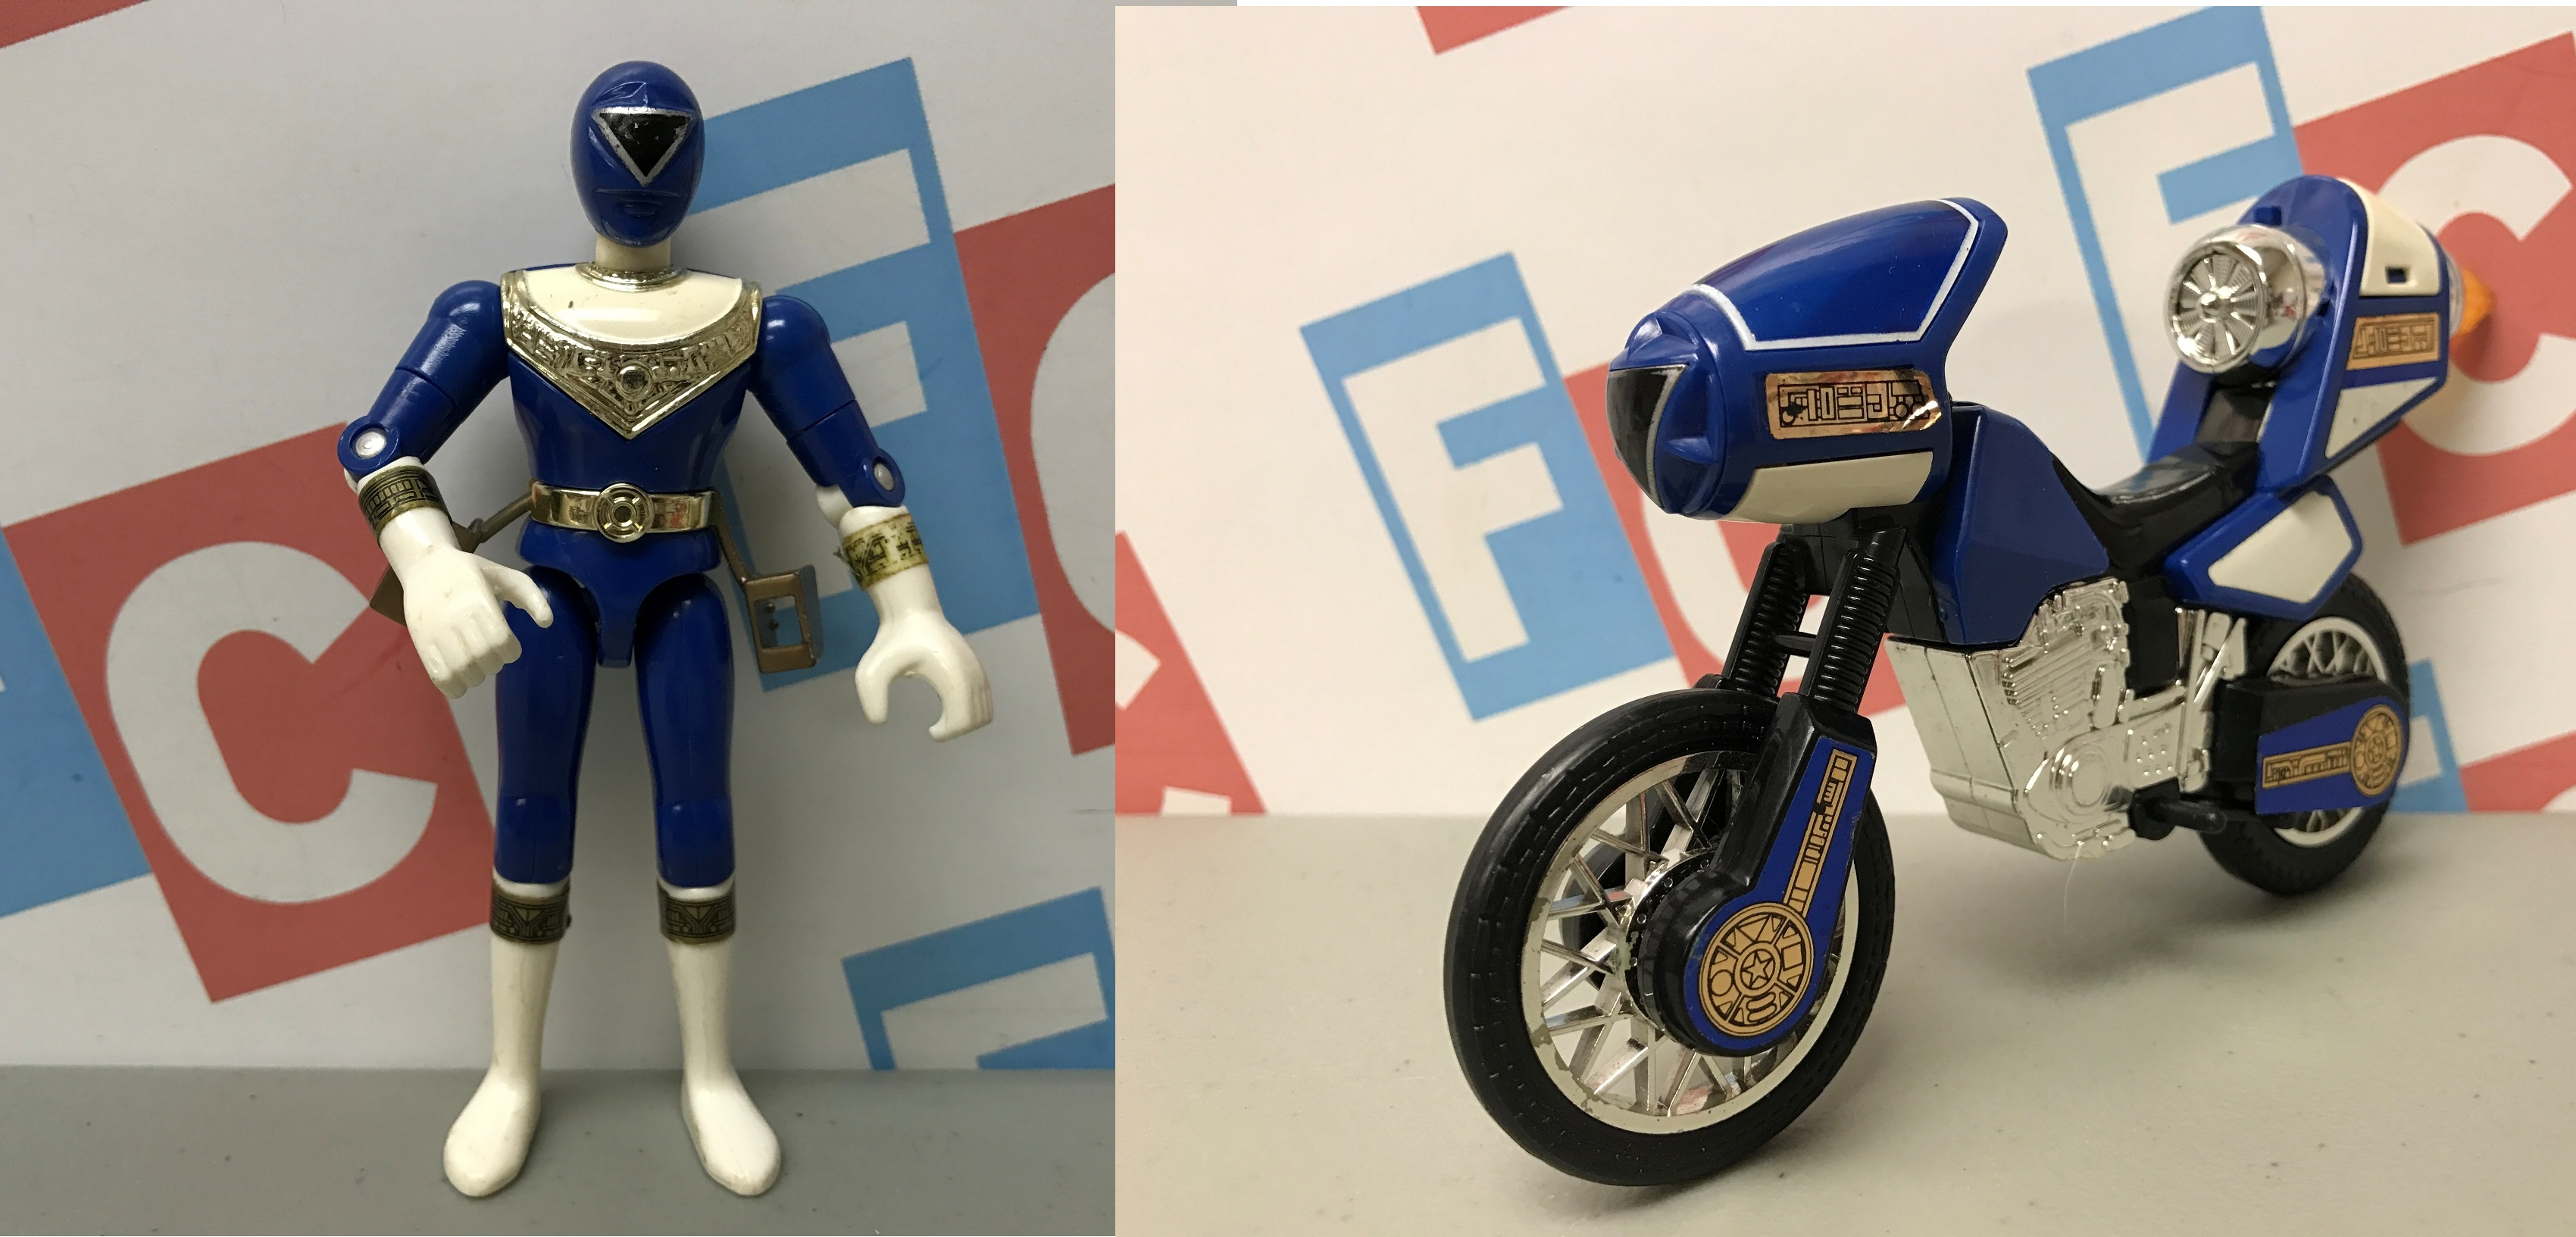 Blue Zeo Jet Cycle